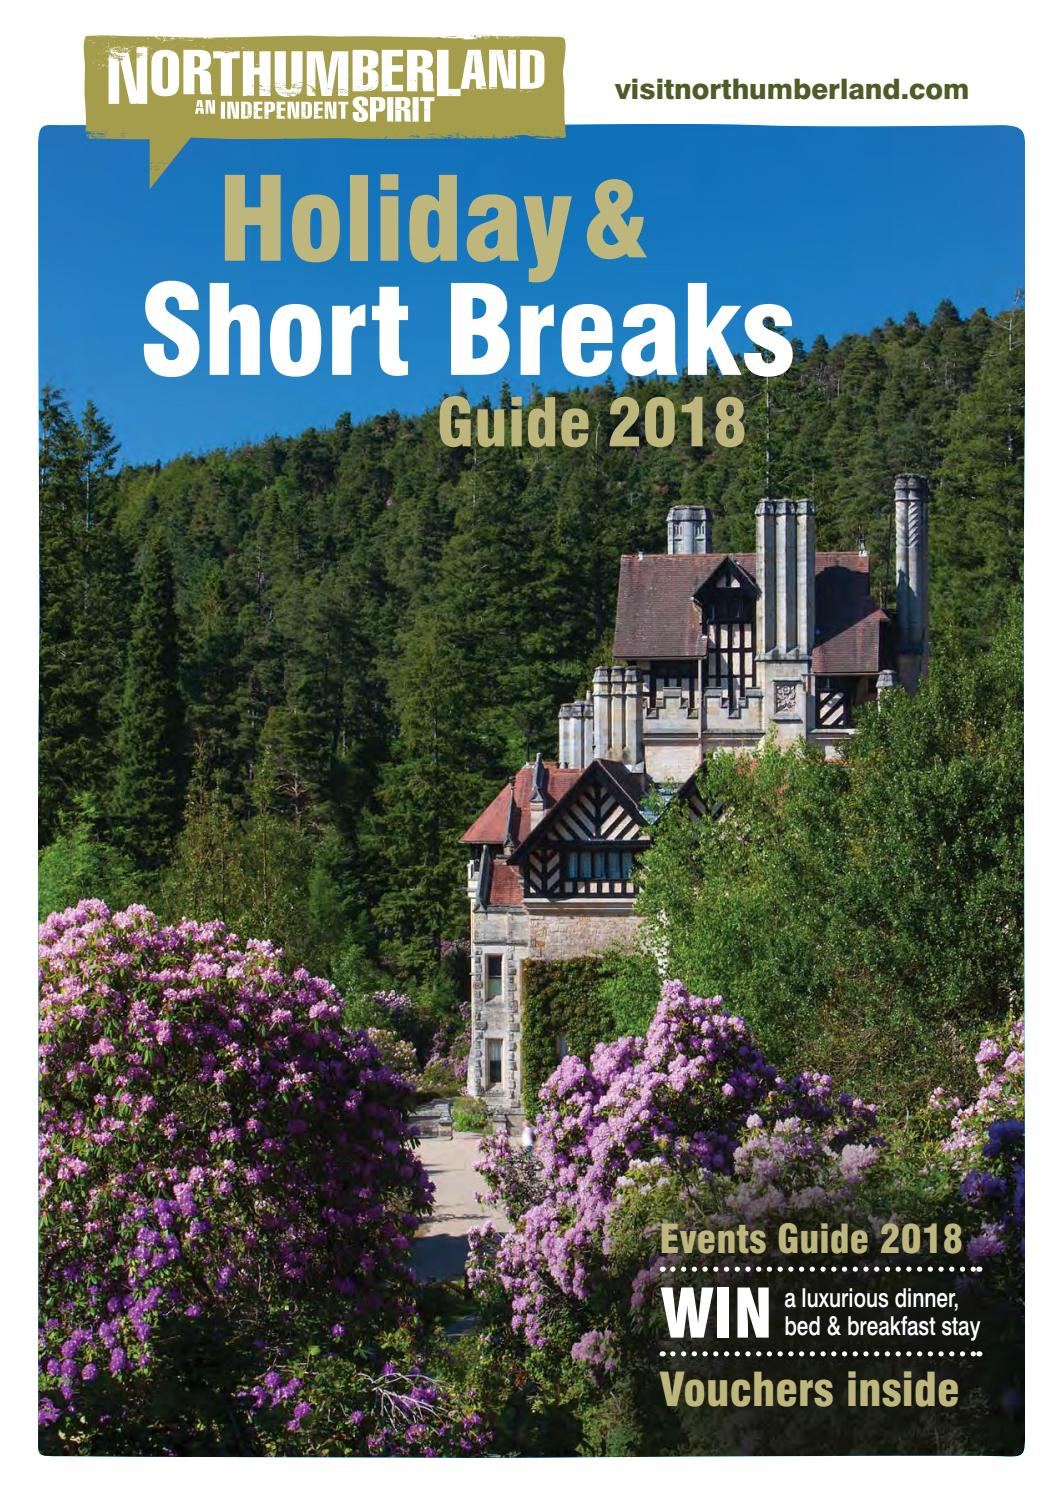 Northumberland Holiday and Short Breaks Guide 2018 by